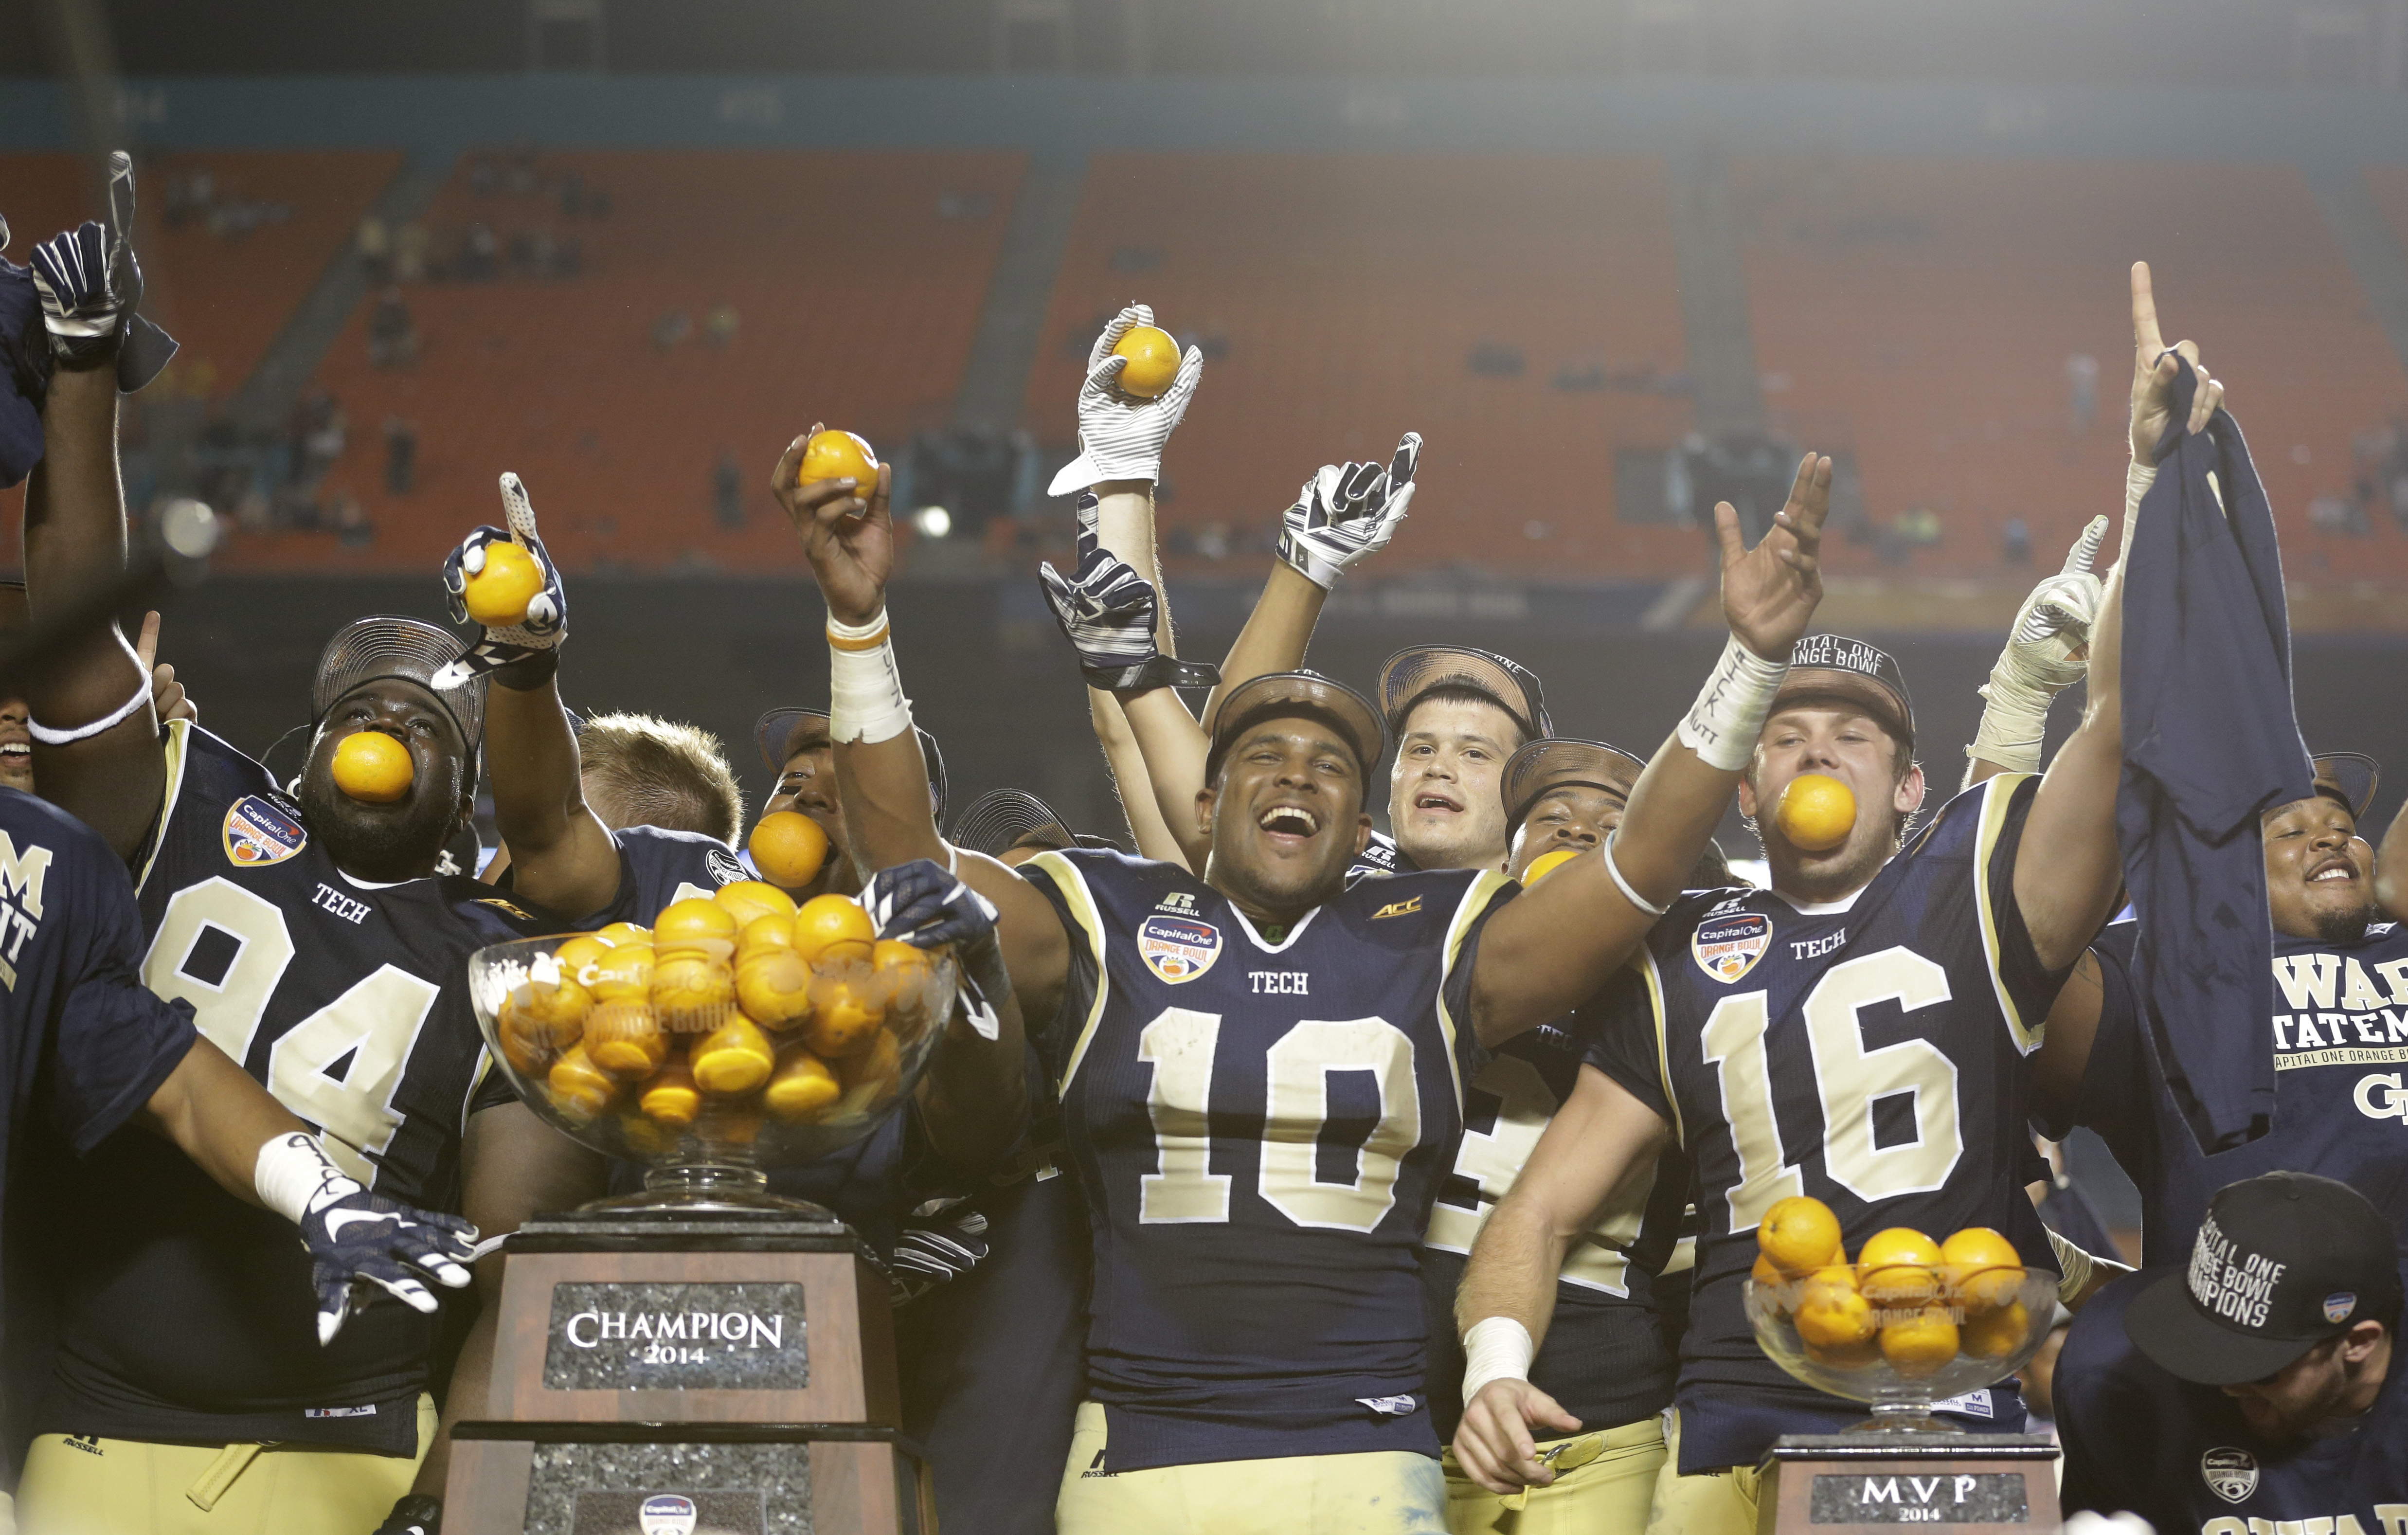 FILE - In this Dec. 31, 2014, file photo, Georgia Tech players celebrate with their trophy after Georgia Tech defeated Mississippi State 49-34 in the Orange Bowl NCAA college football game in Miami Gardens, Fla. Plenty has changed around the Atlantic Coas